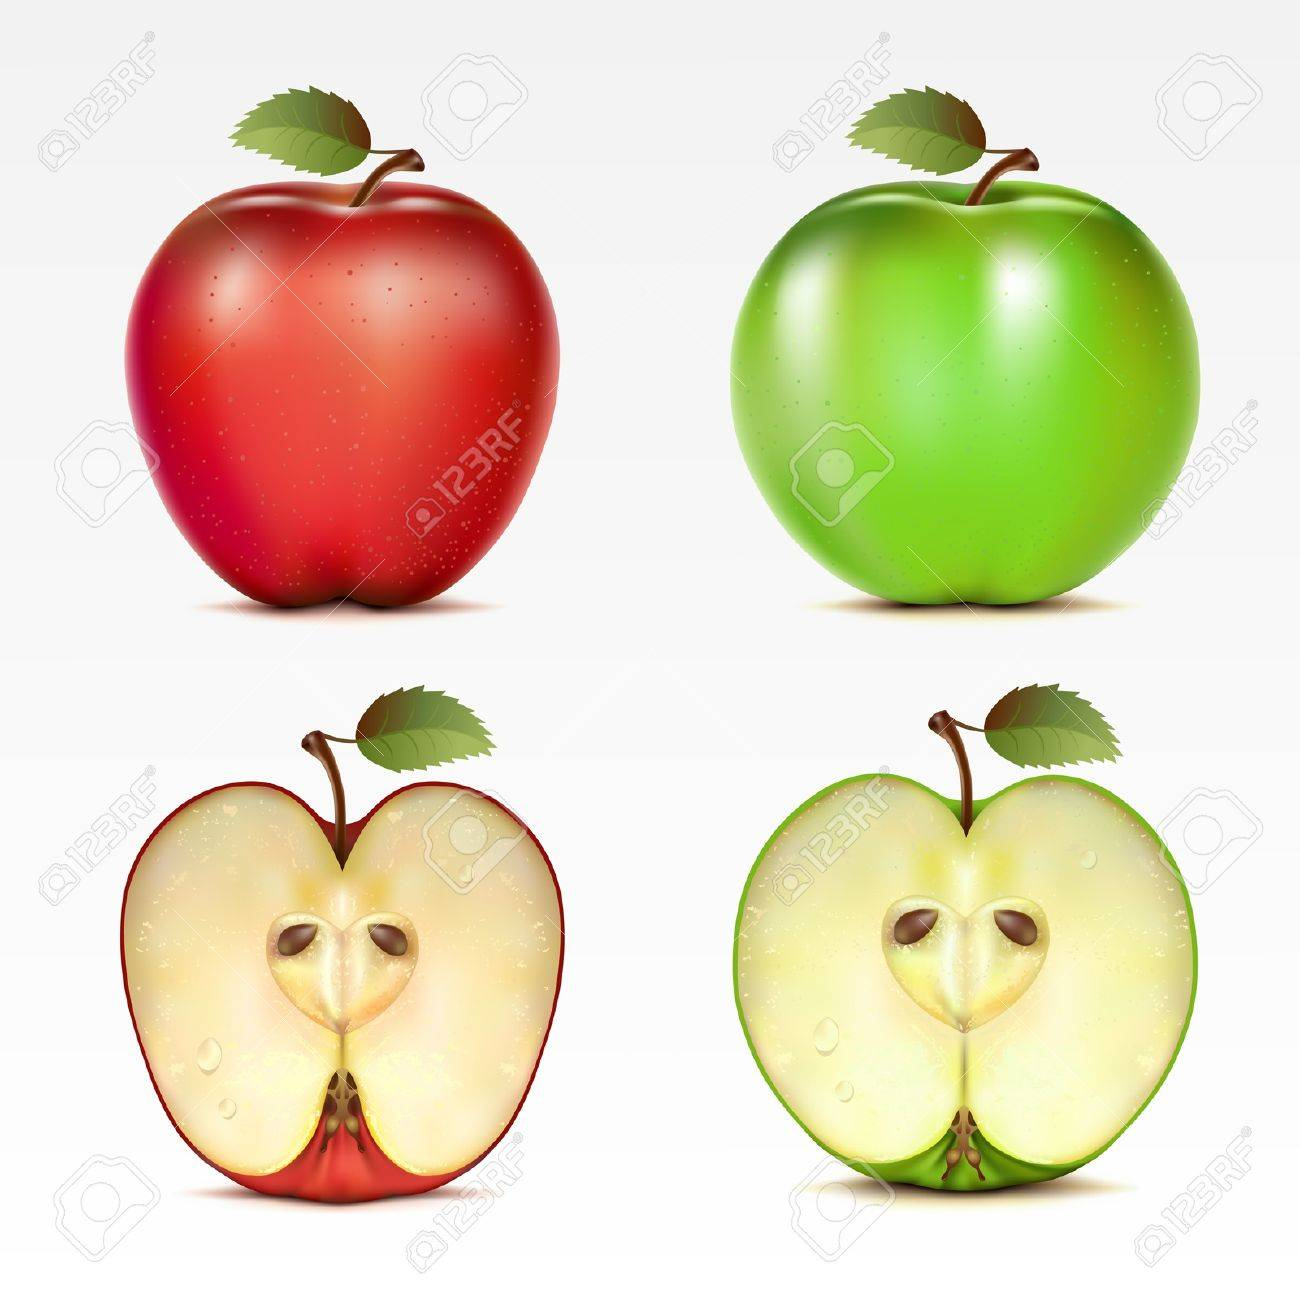 Set of red and green apples and their halves - 9567691